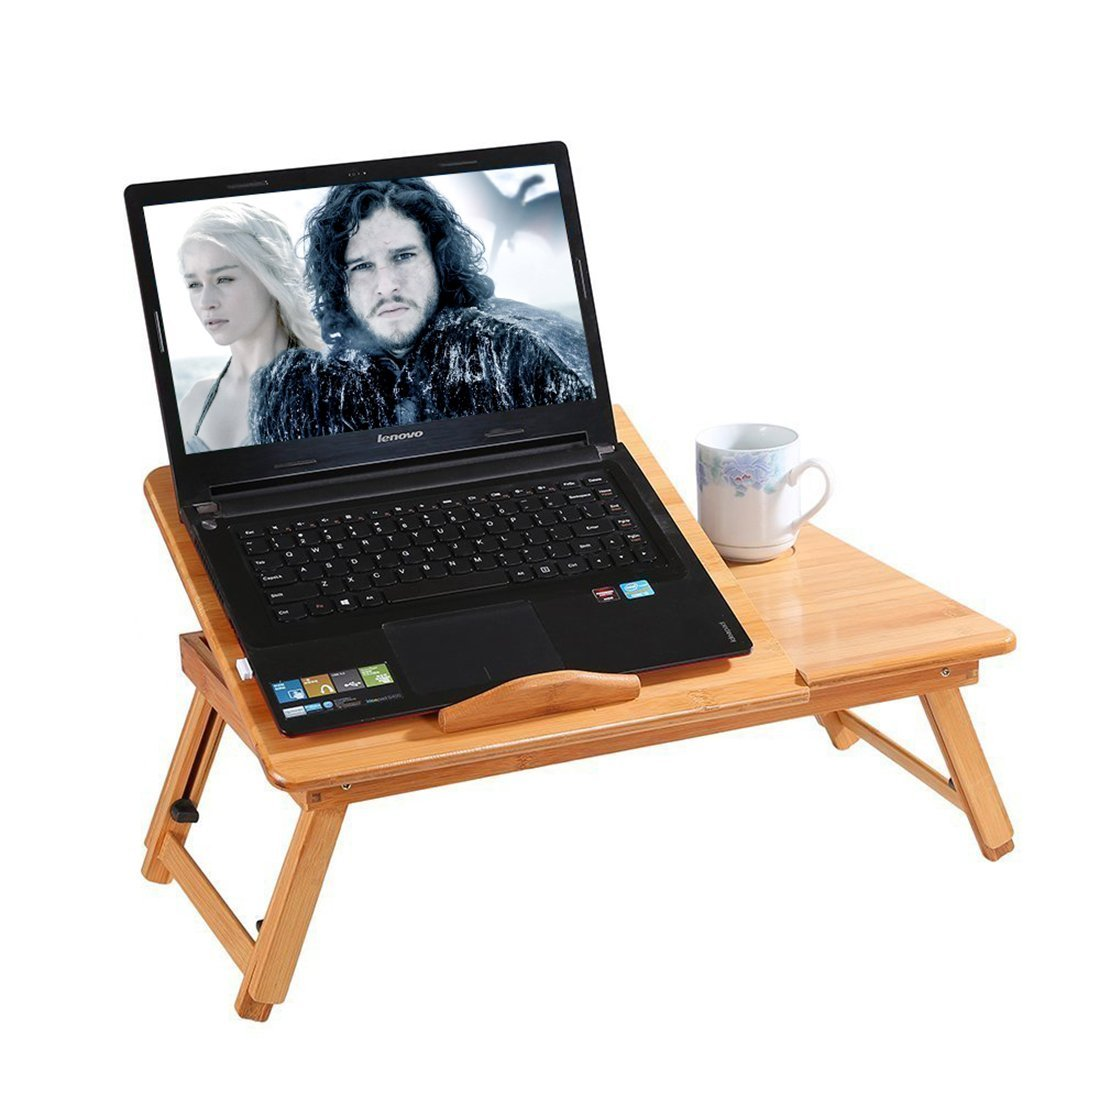 CharaVector Bamboo Lap Desk Adjustable Breakfast Serving Bed Tray Tilting Top Drawer